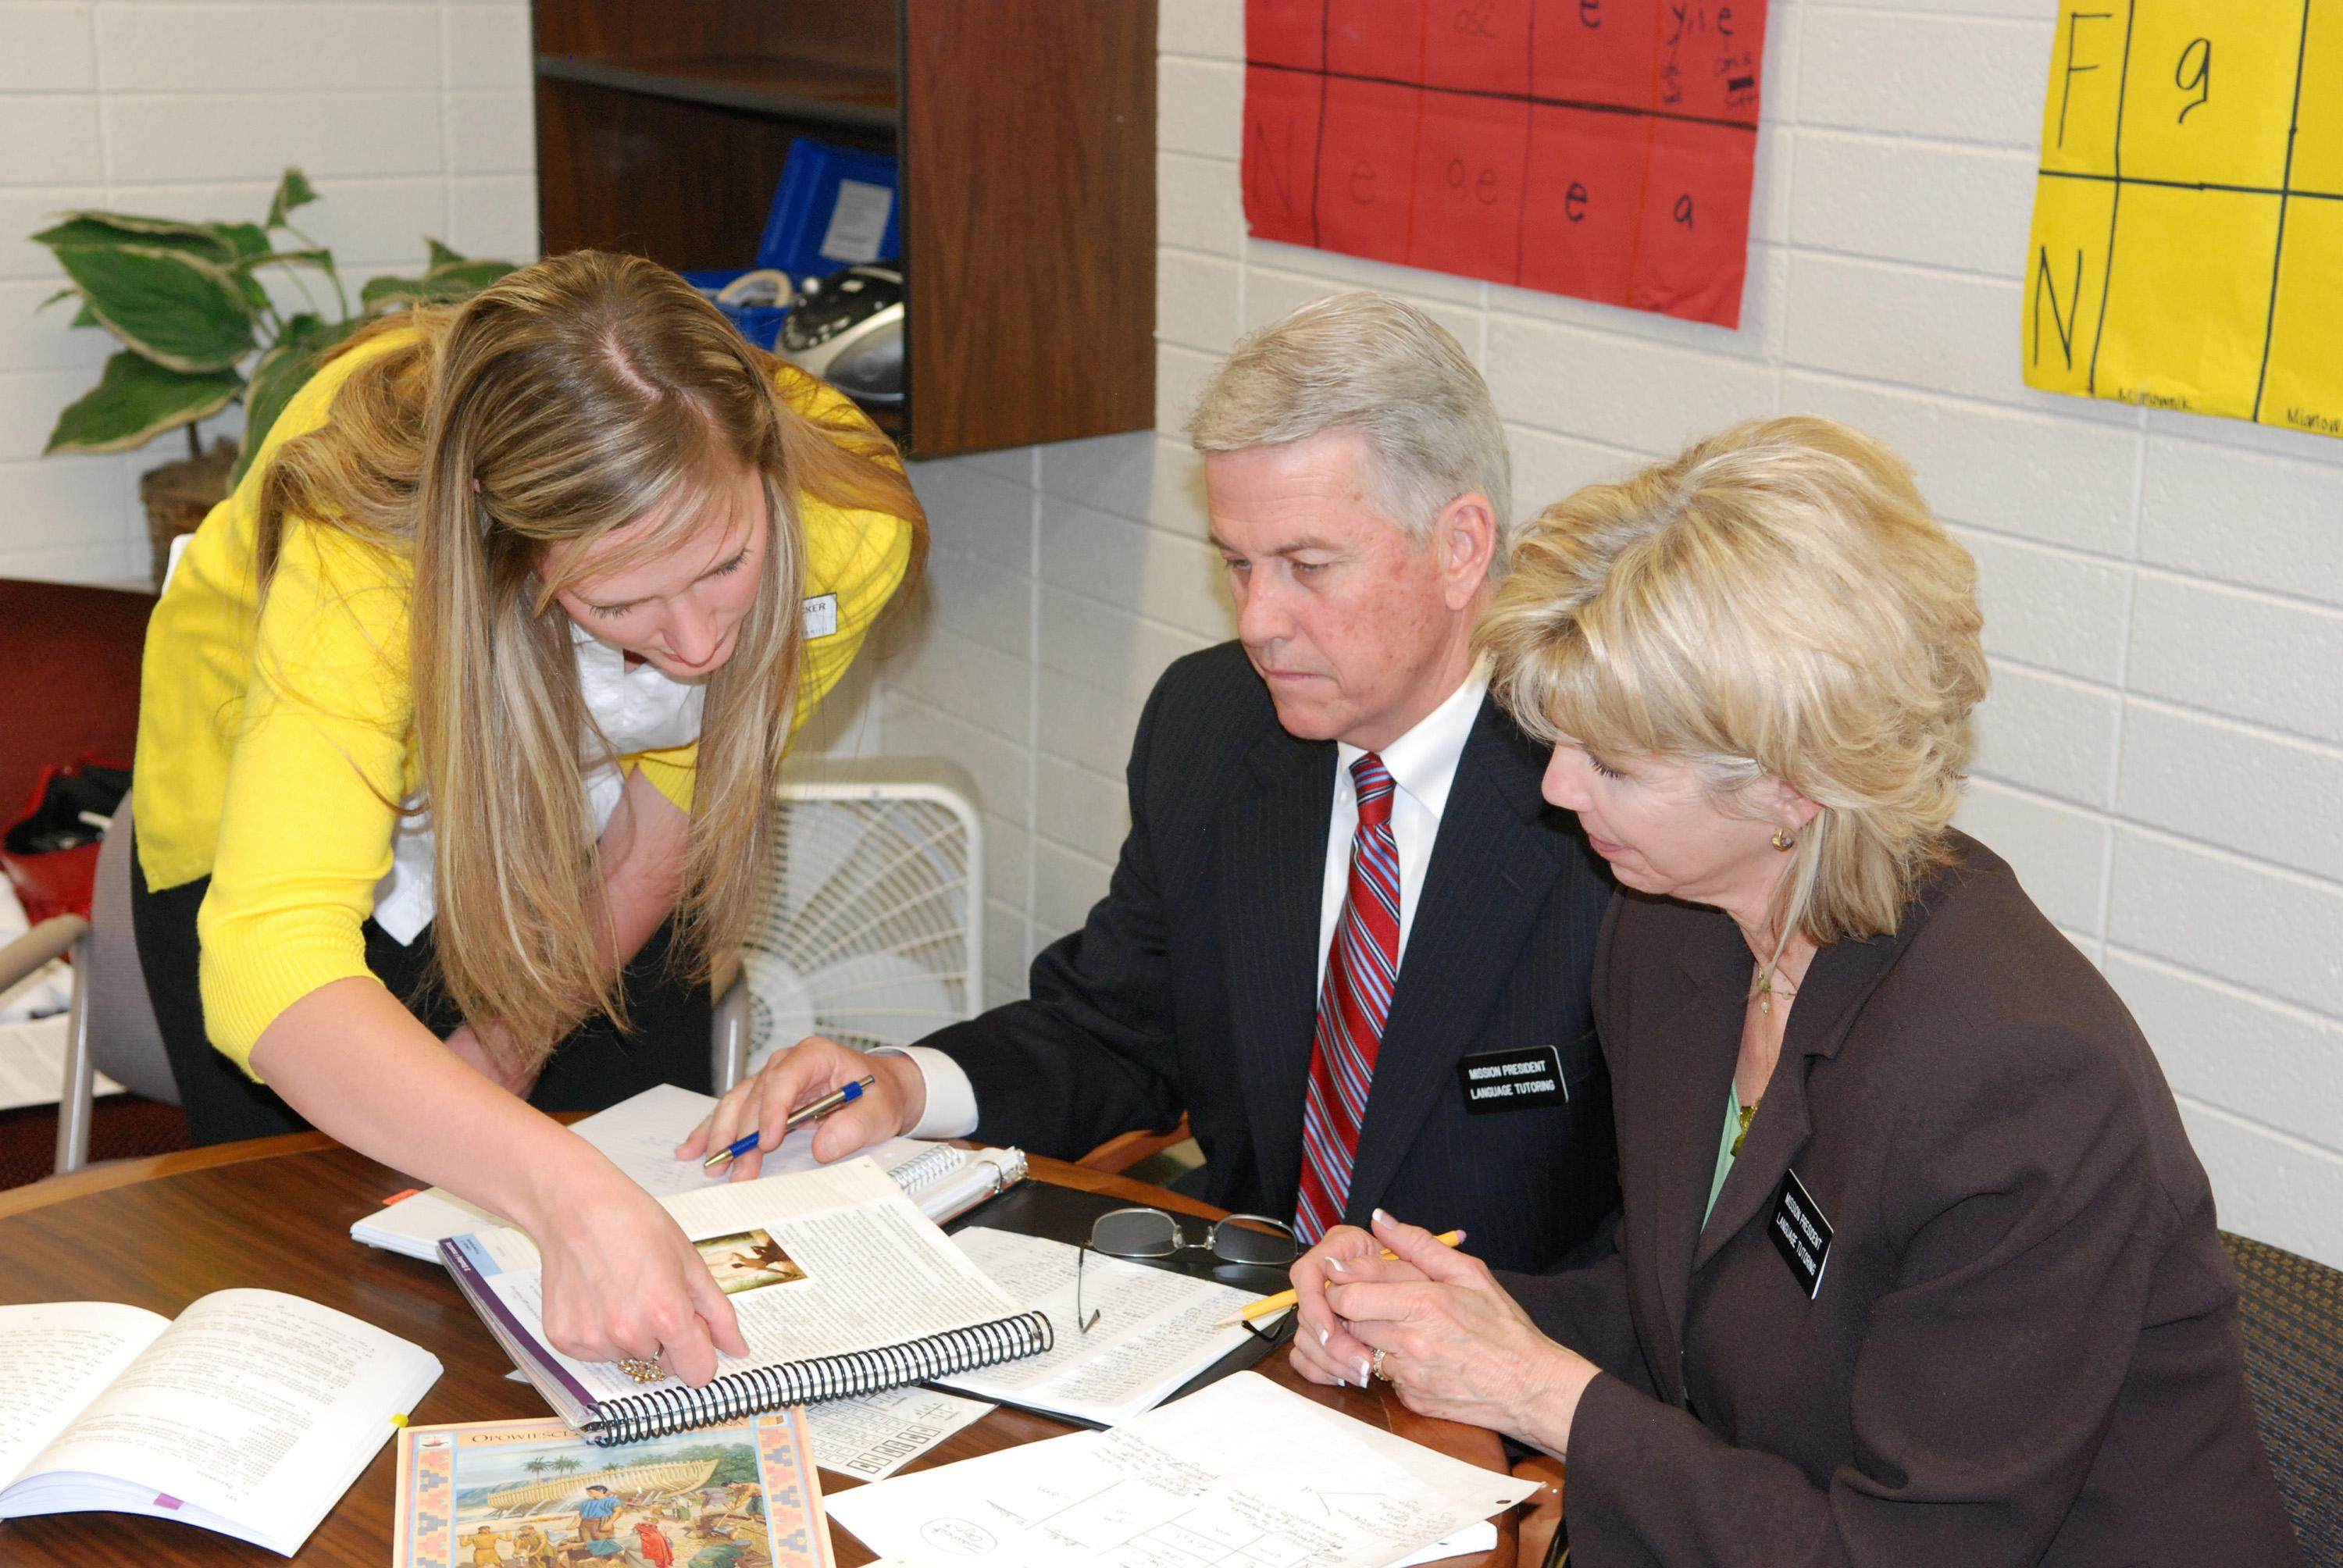 Stan and Judi Nielson study Polish language at the Missionary Training Center in Provo, Utah. (Mormon Newsroom)